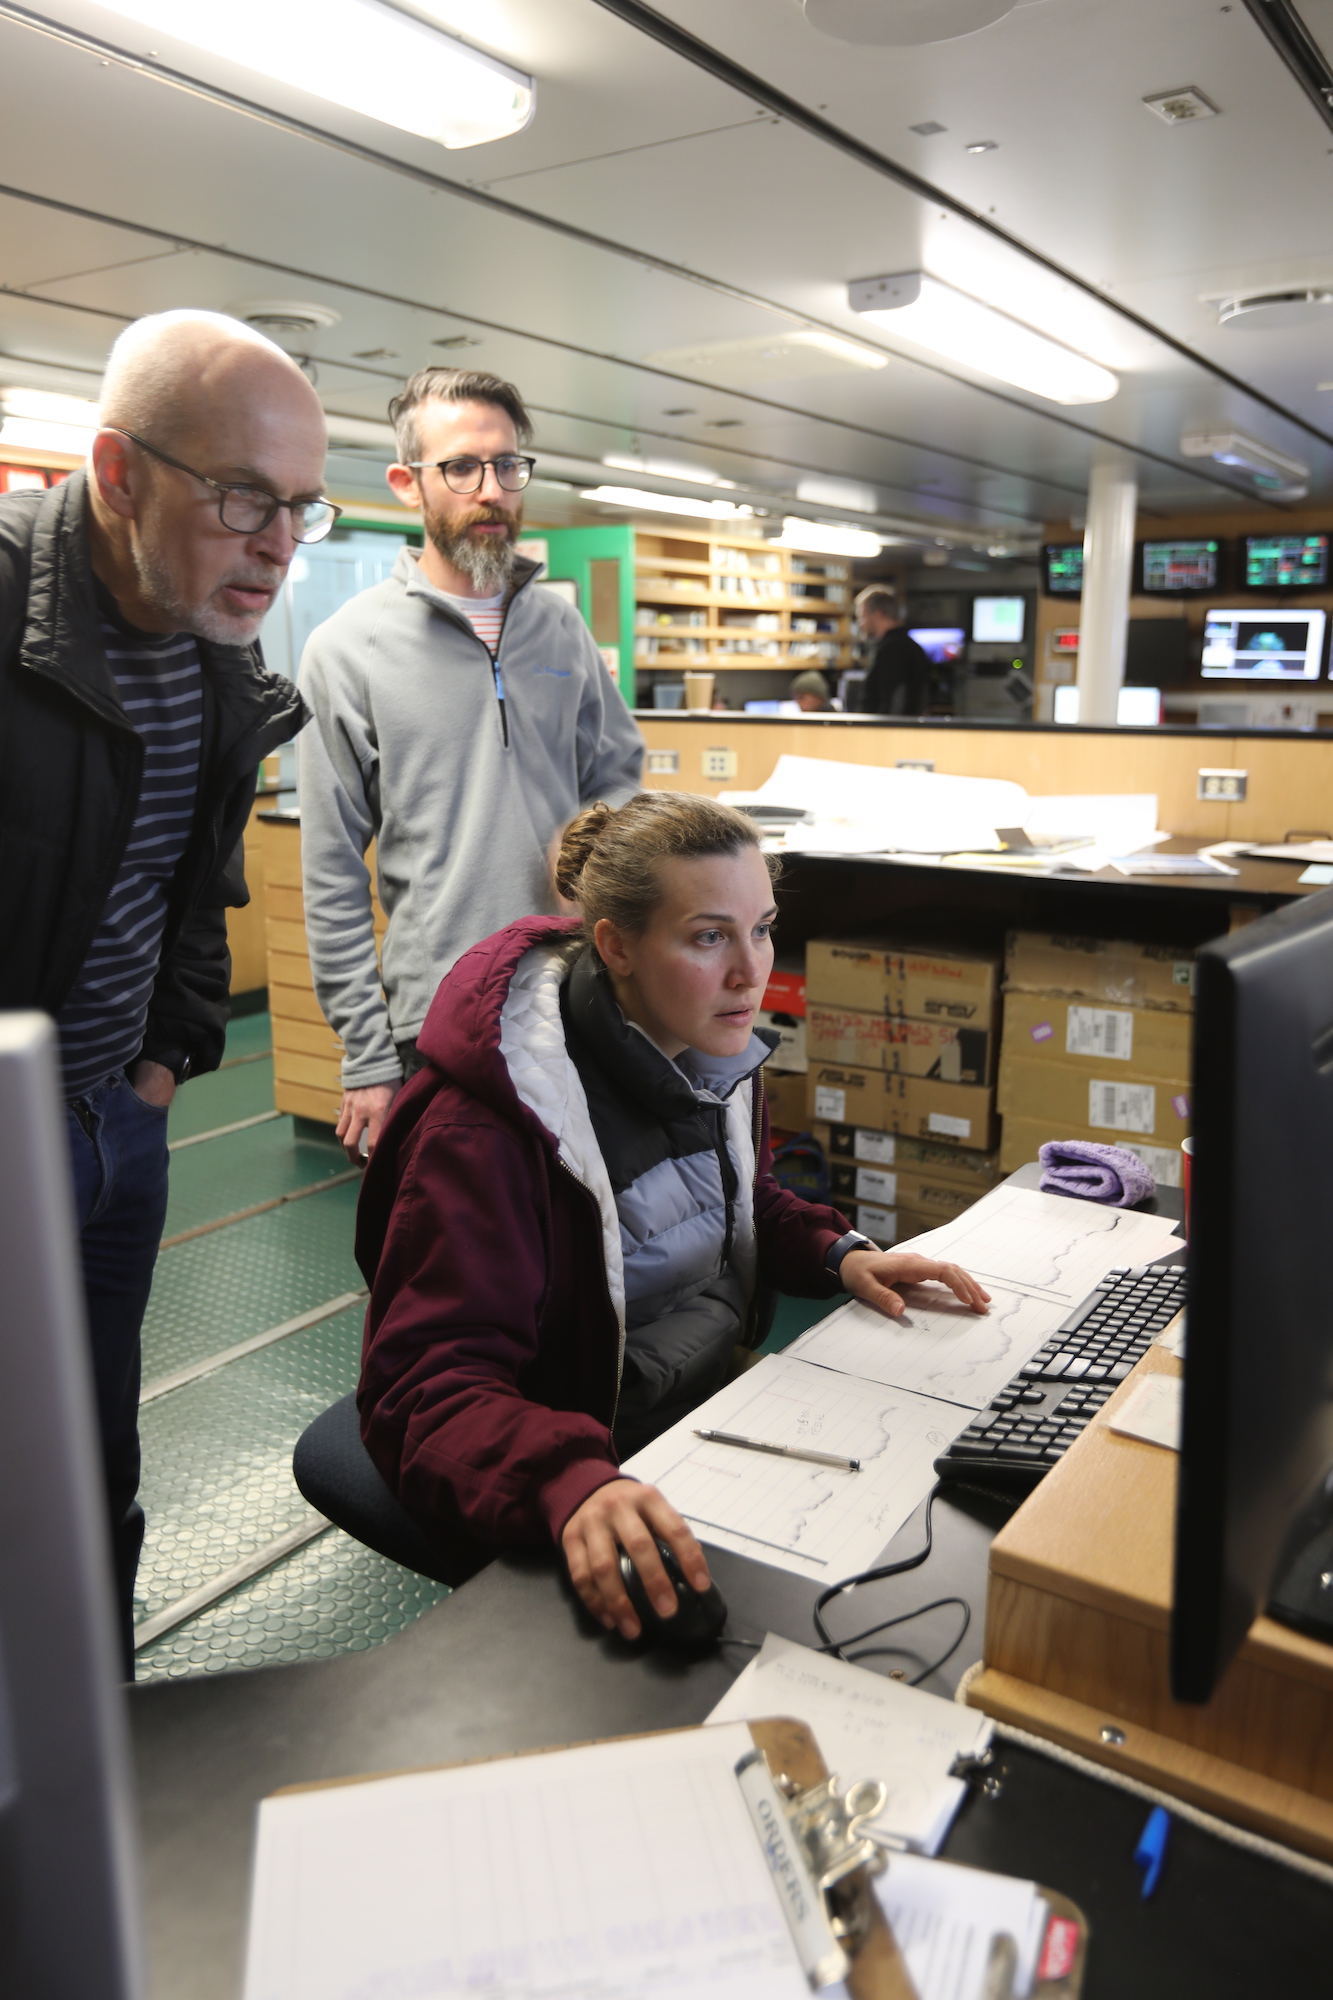 (Left to right) Rob Larter, Ali Graham and Becky Minzoni compare the Knudsen sub-profile images with new bathymetry gathered after arriving at Thwaites glacier.